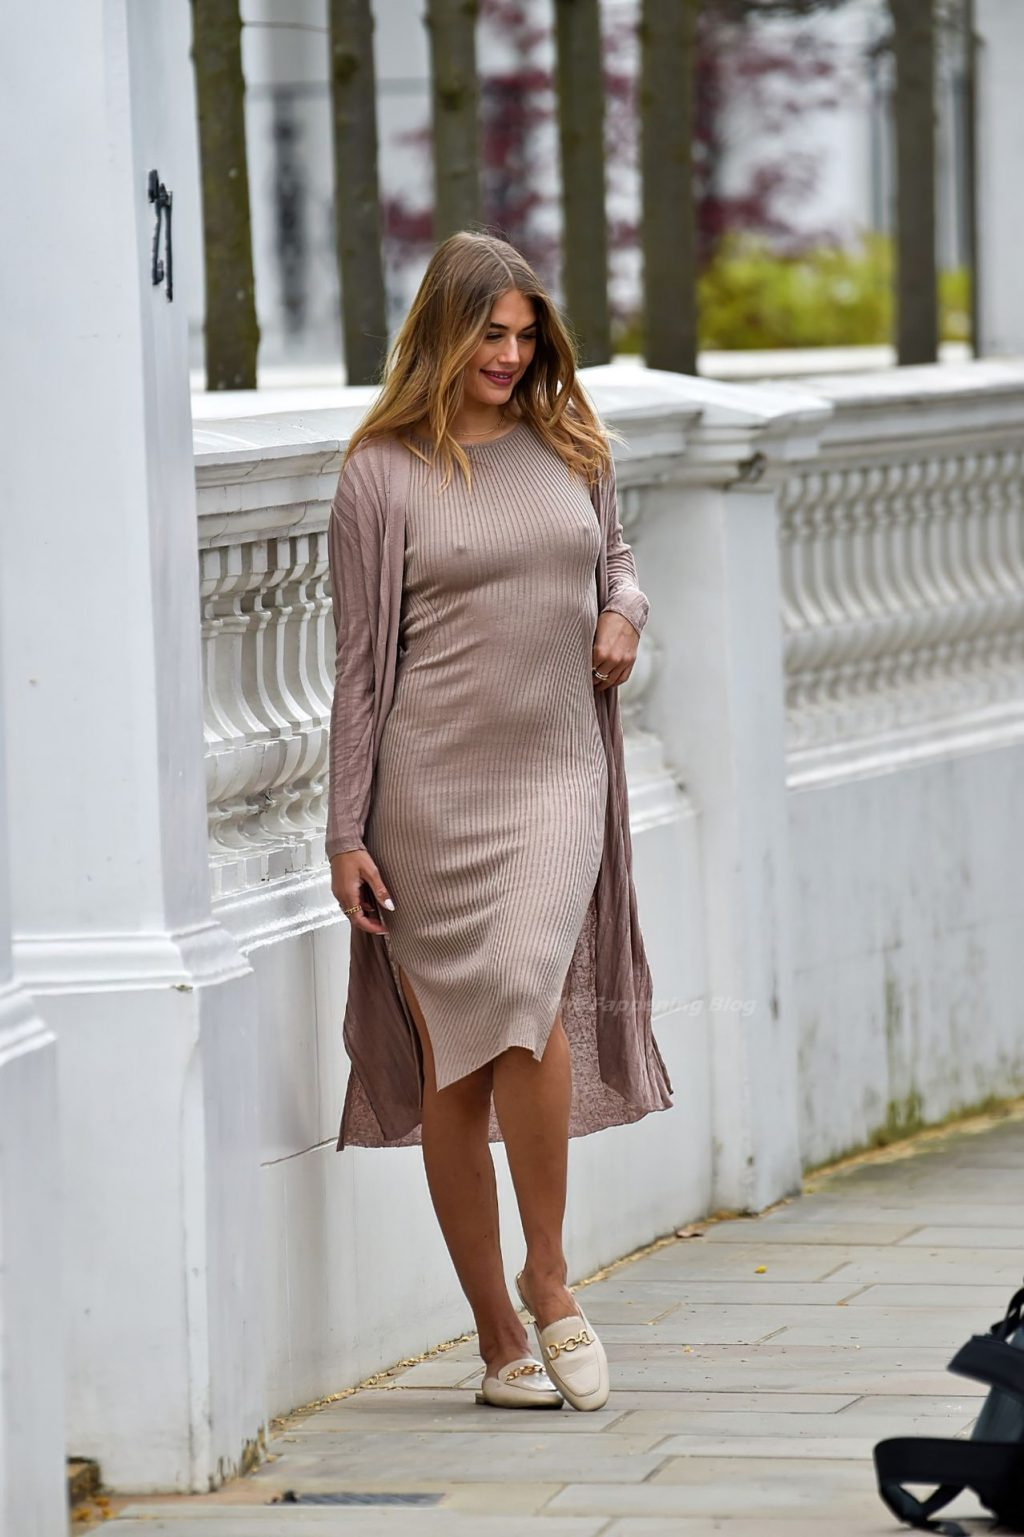 Arabella Chi Goes Braless in a Midi Dress in Chelsea (32 Photos)